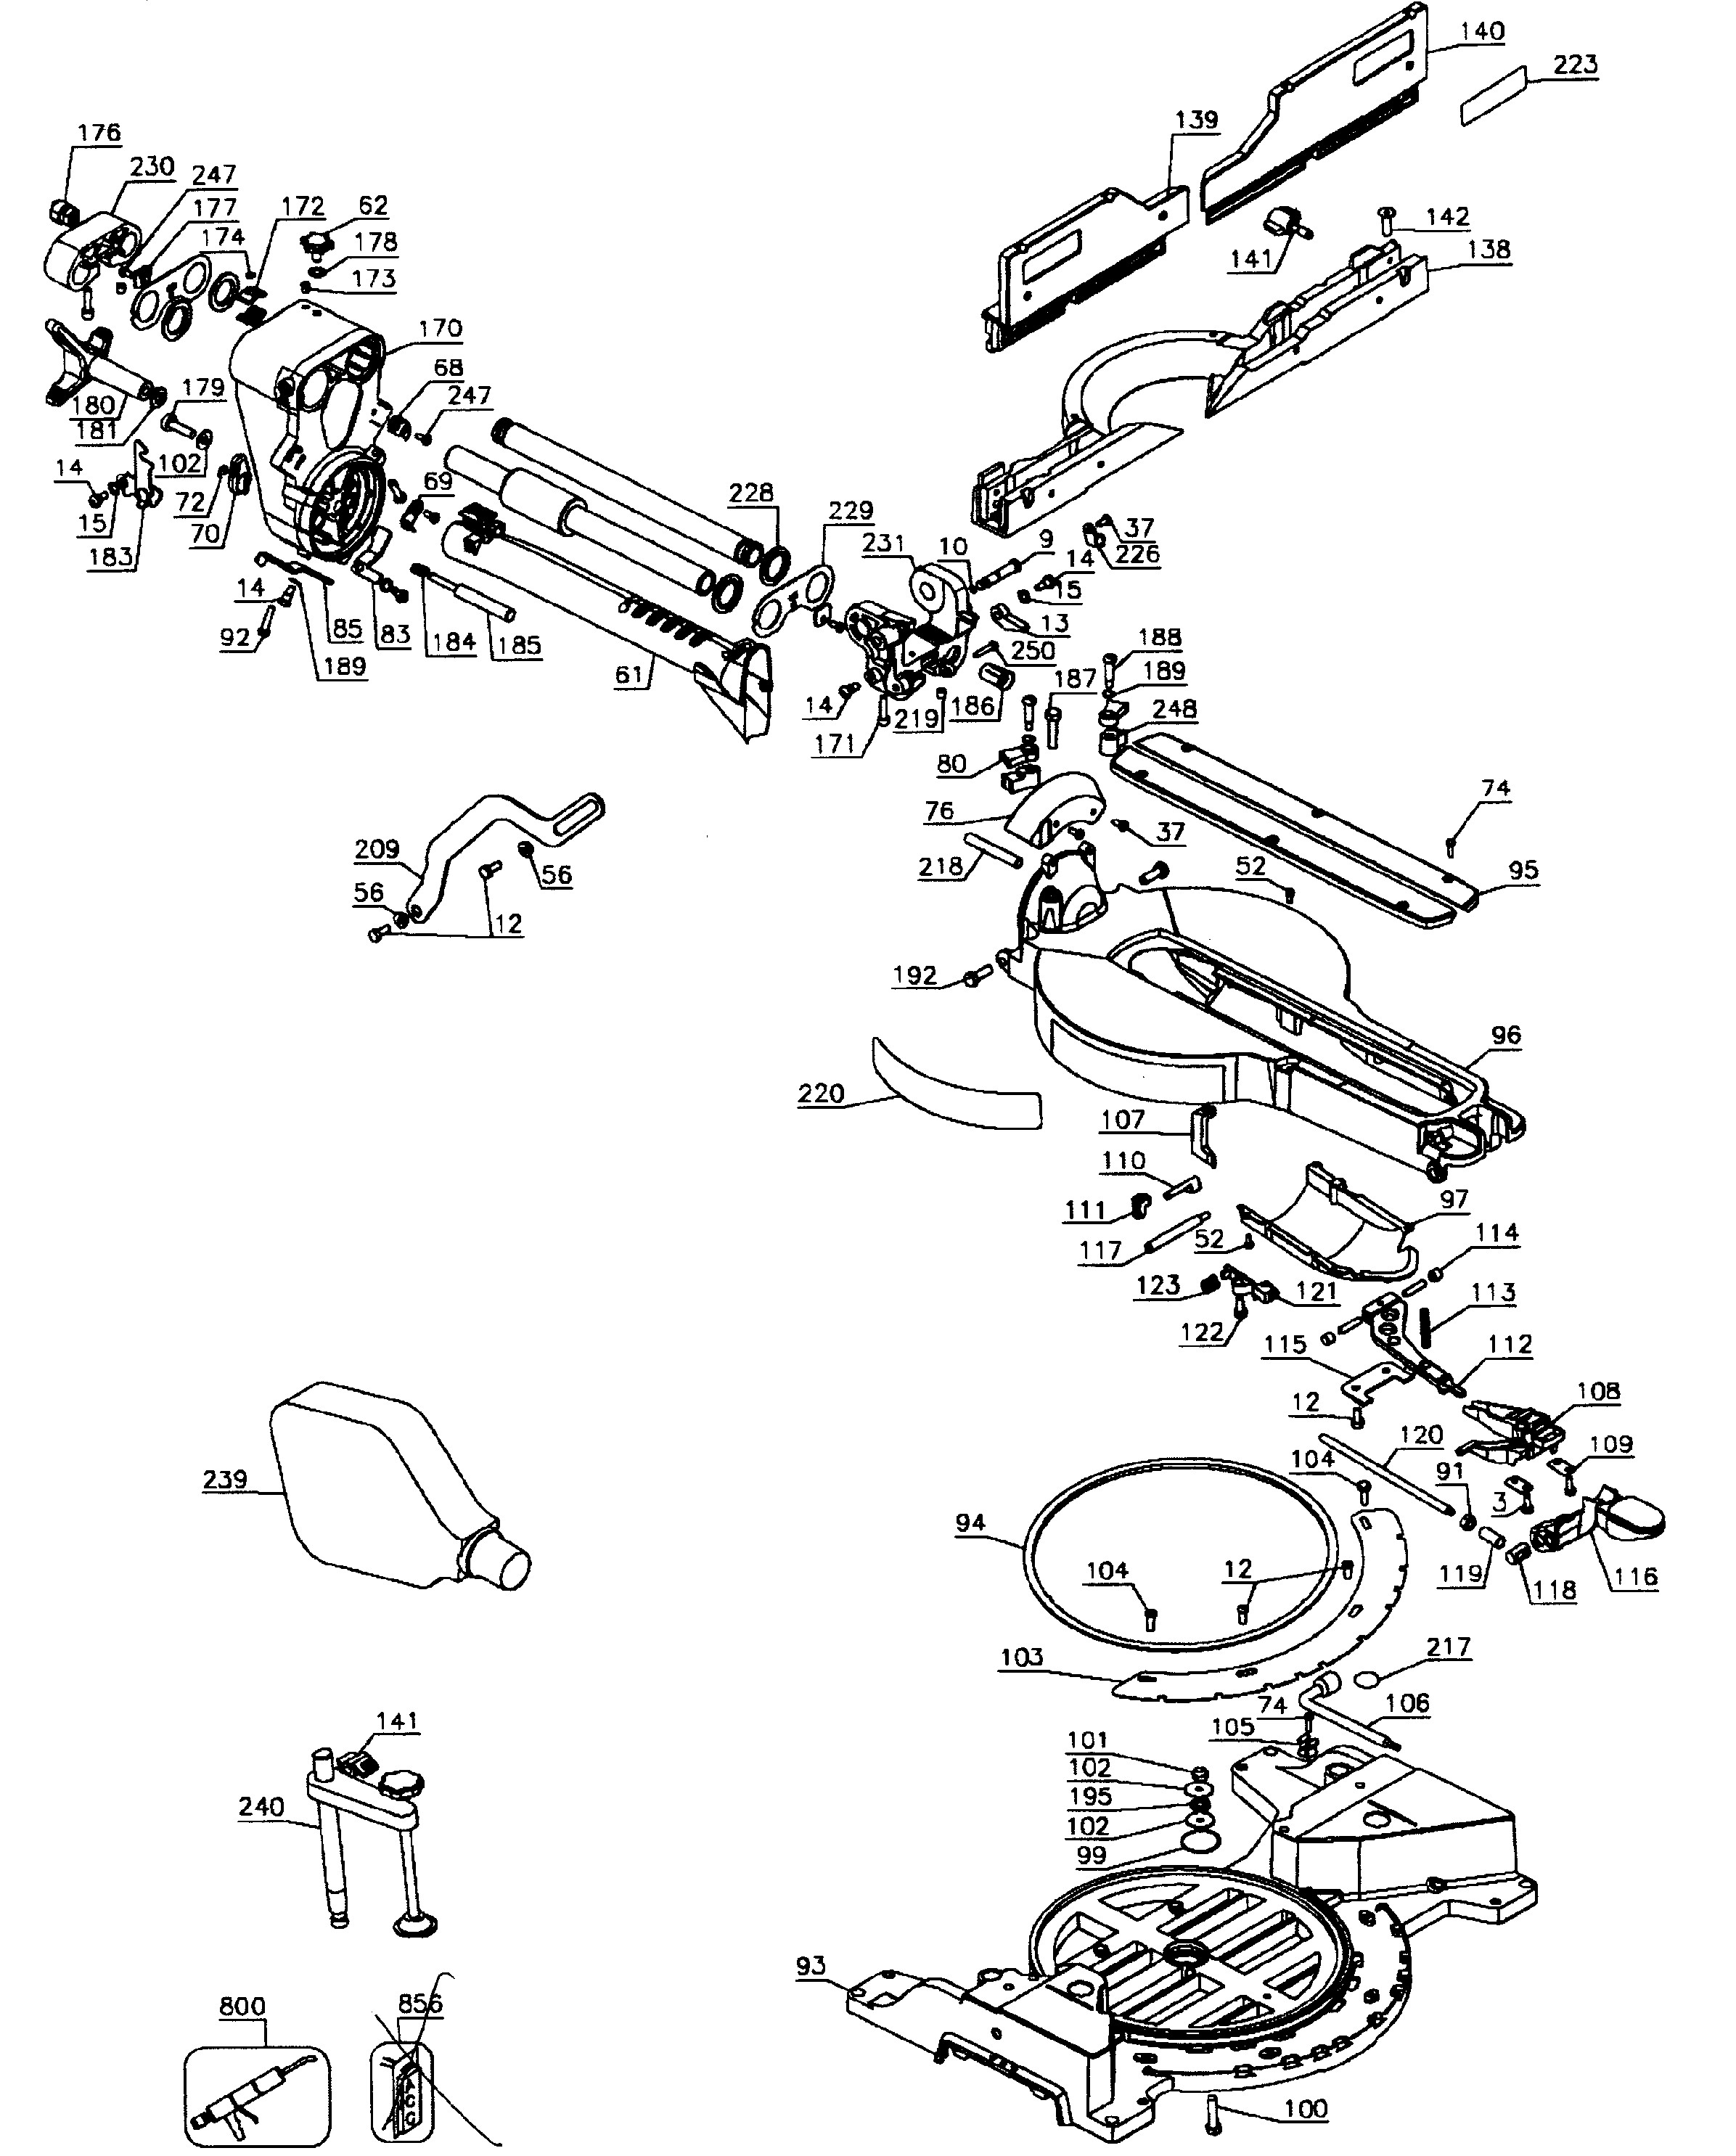 dewalt miter saw parts diagram dewalt dw718 type 1 parts